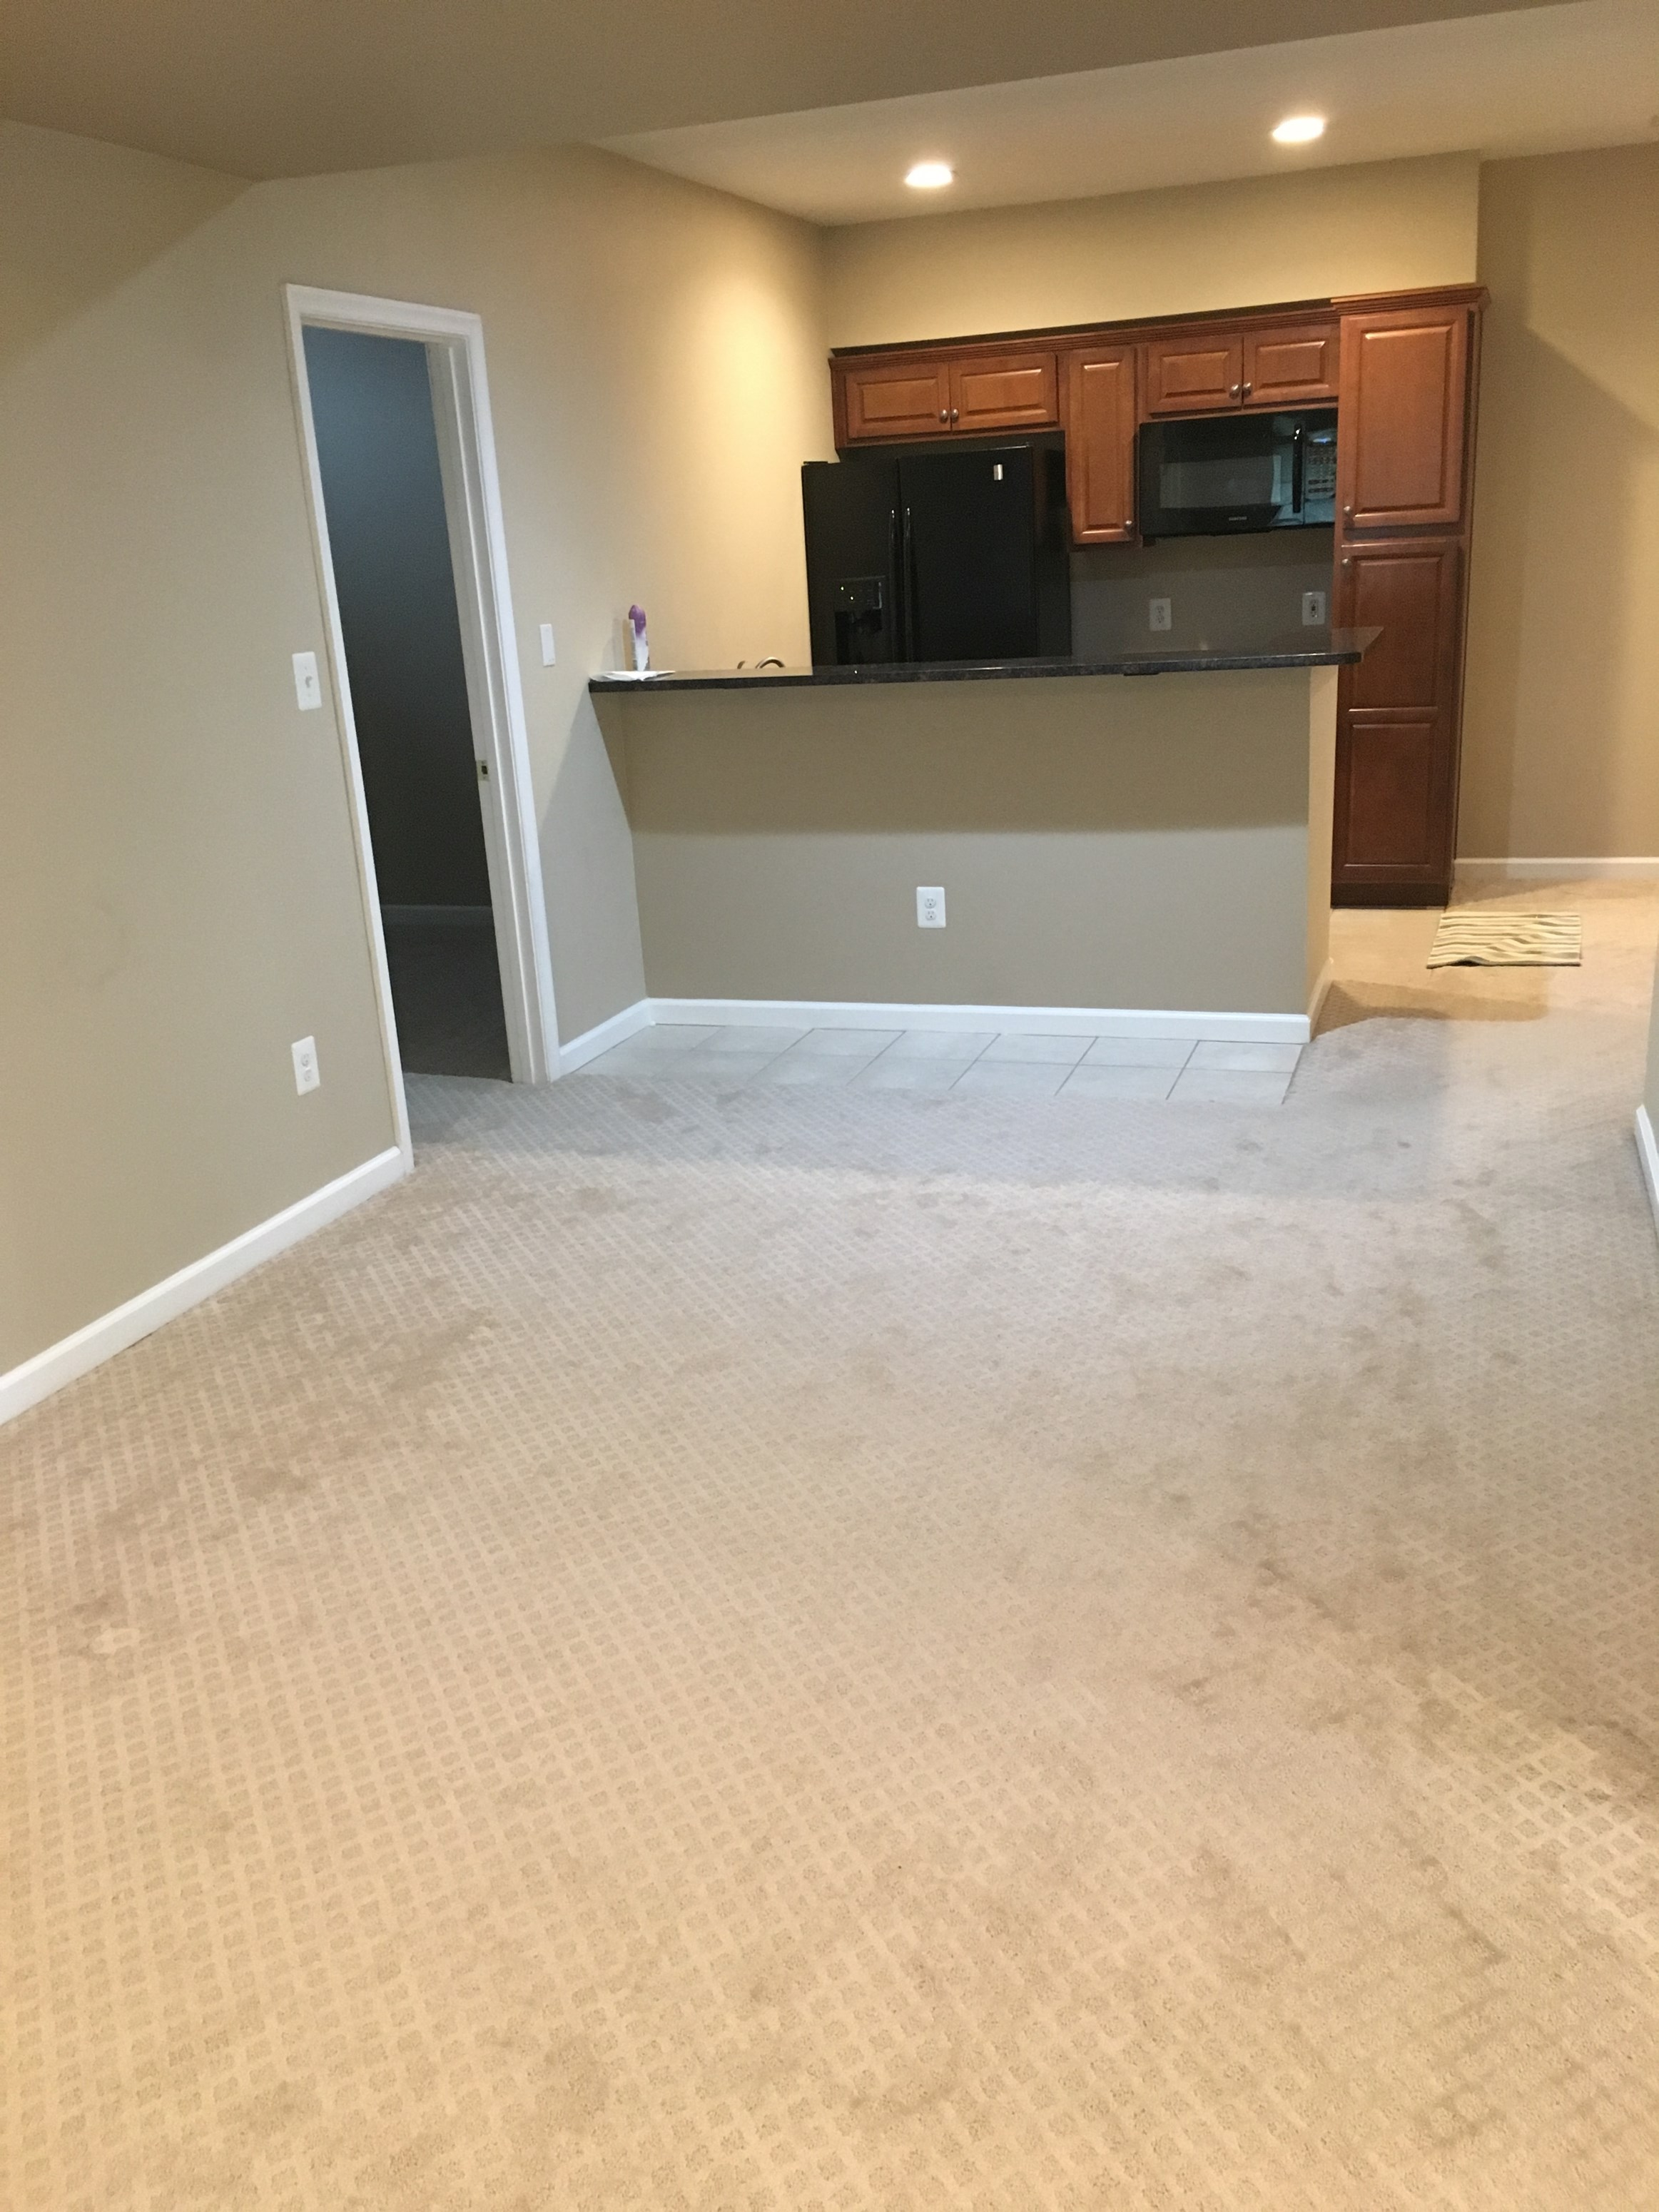 basement apartment bedroom. Large Basement With 1 Bedroom And Small Room  Independent Laundry Find basement Apartment for Rent in Ashburn VA Sulekha Rentals